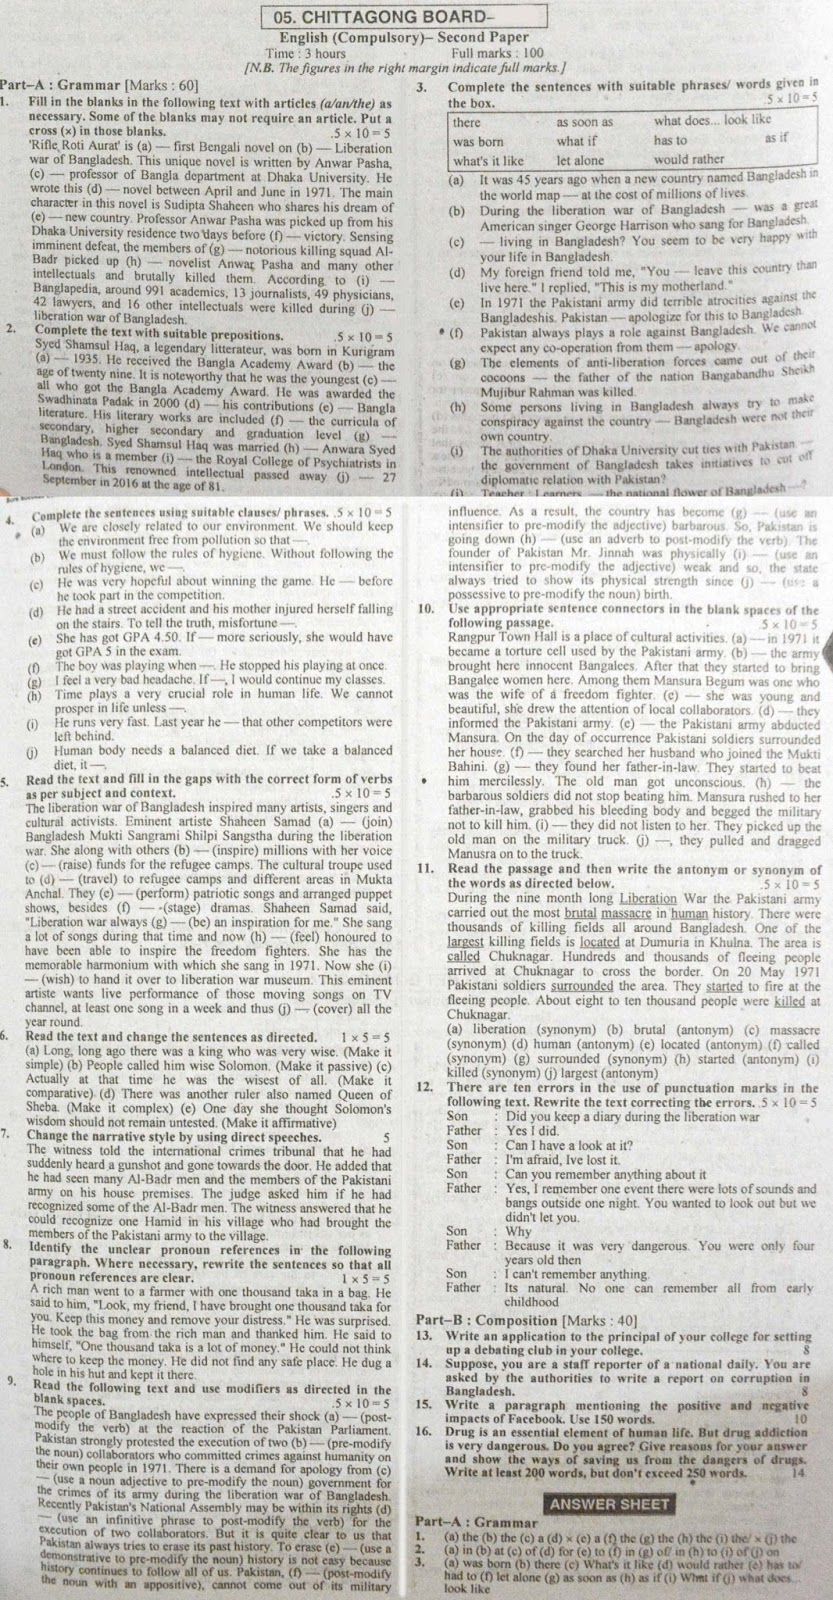 hsc english 2nd Paper suggestion, exam question paper, model question, mcq question, question pattern, preparation for dhaka board, all boards